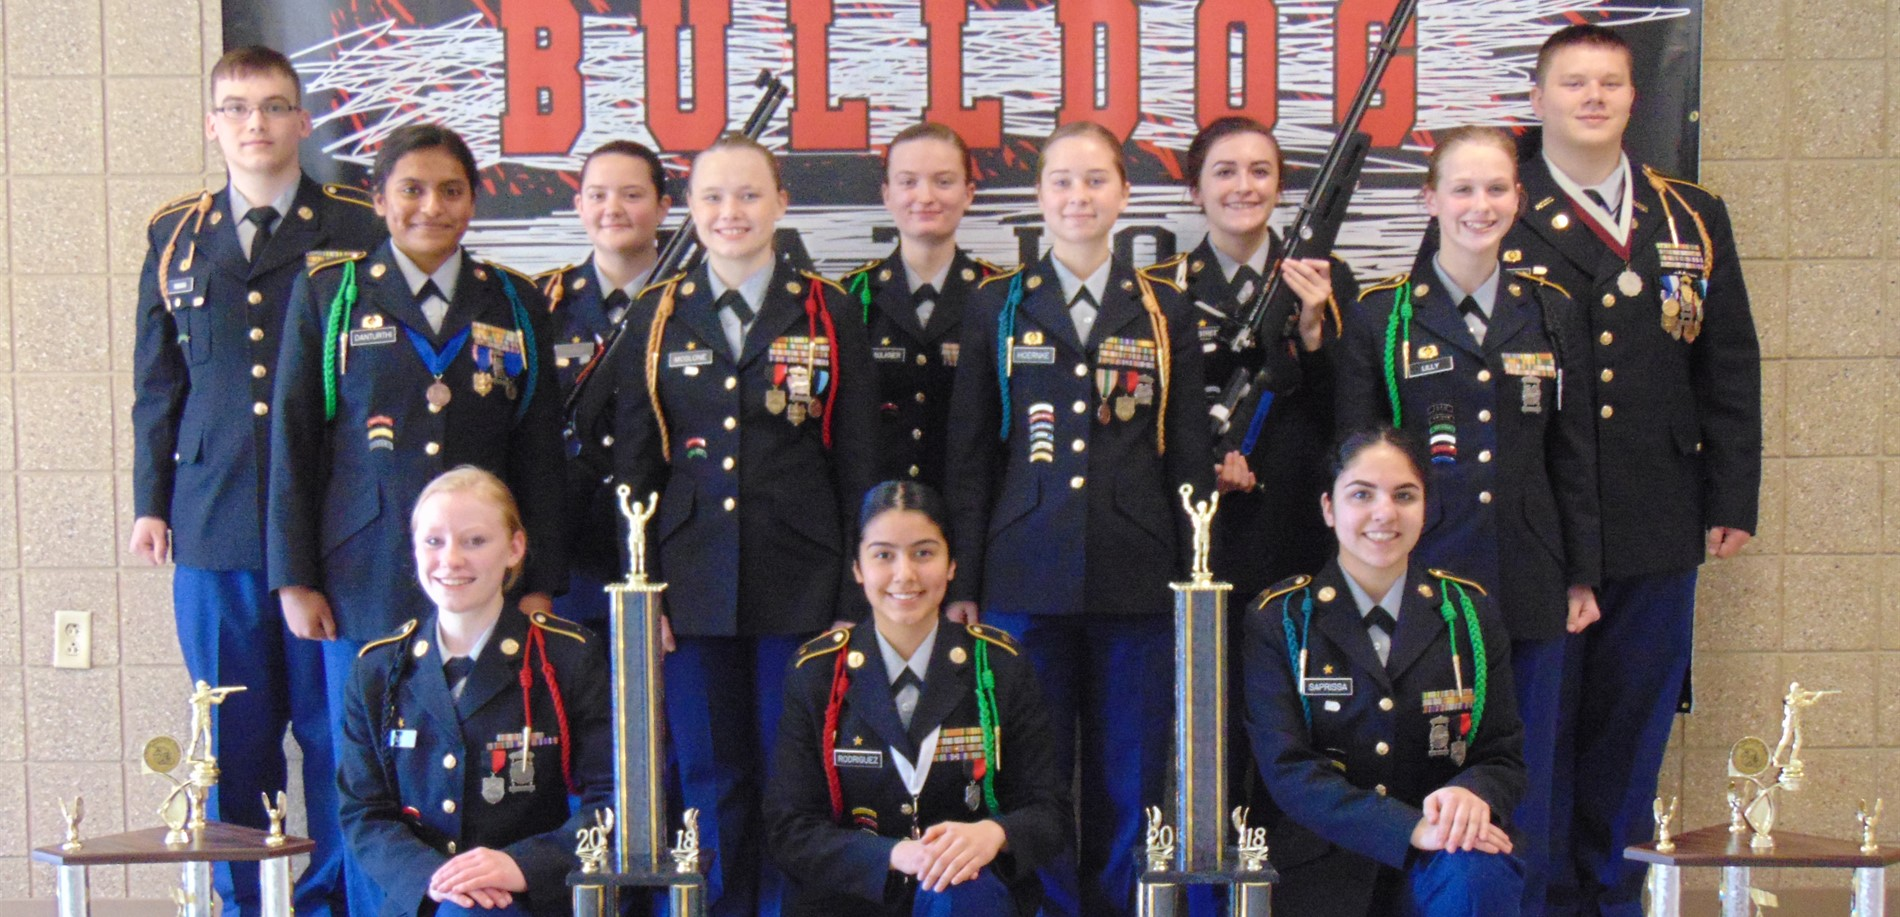 John Hardin JROTC Marksmanship Team  and their recent awards